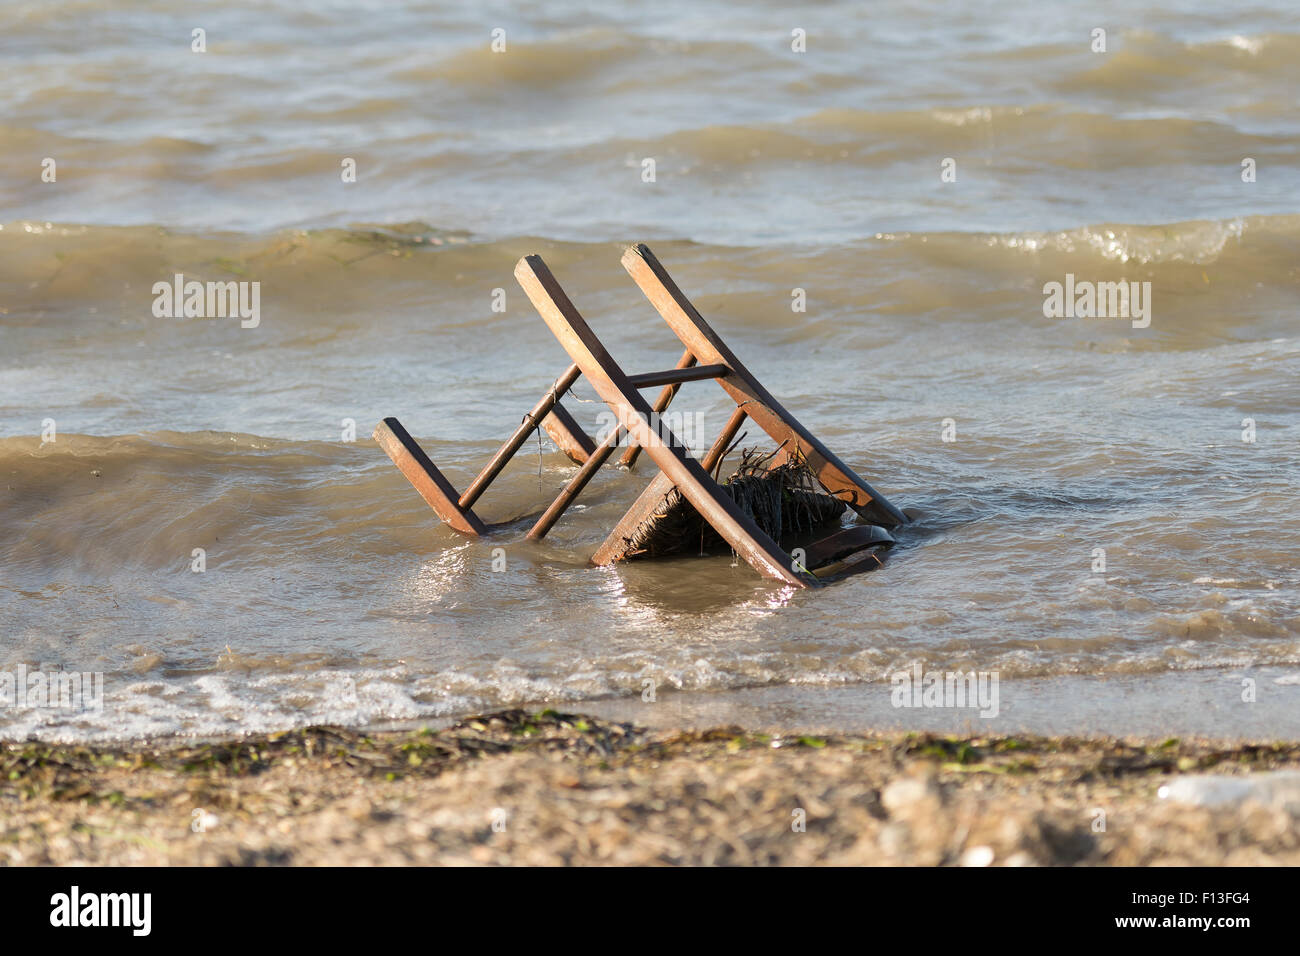 Polluted beach with a chair in it. - Stock Image